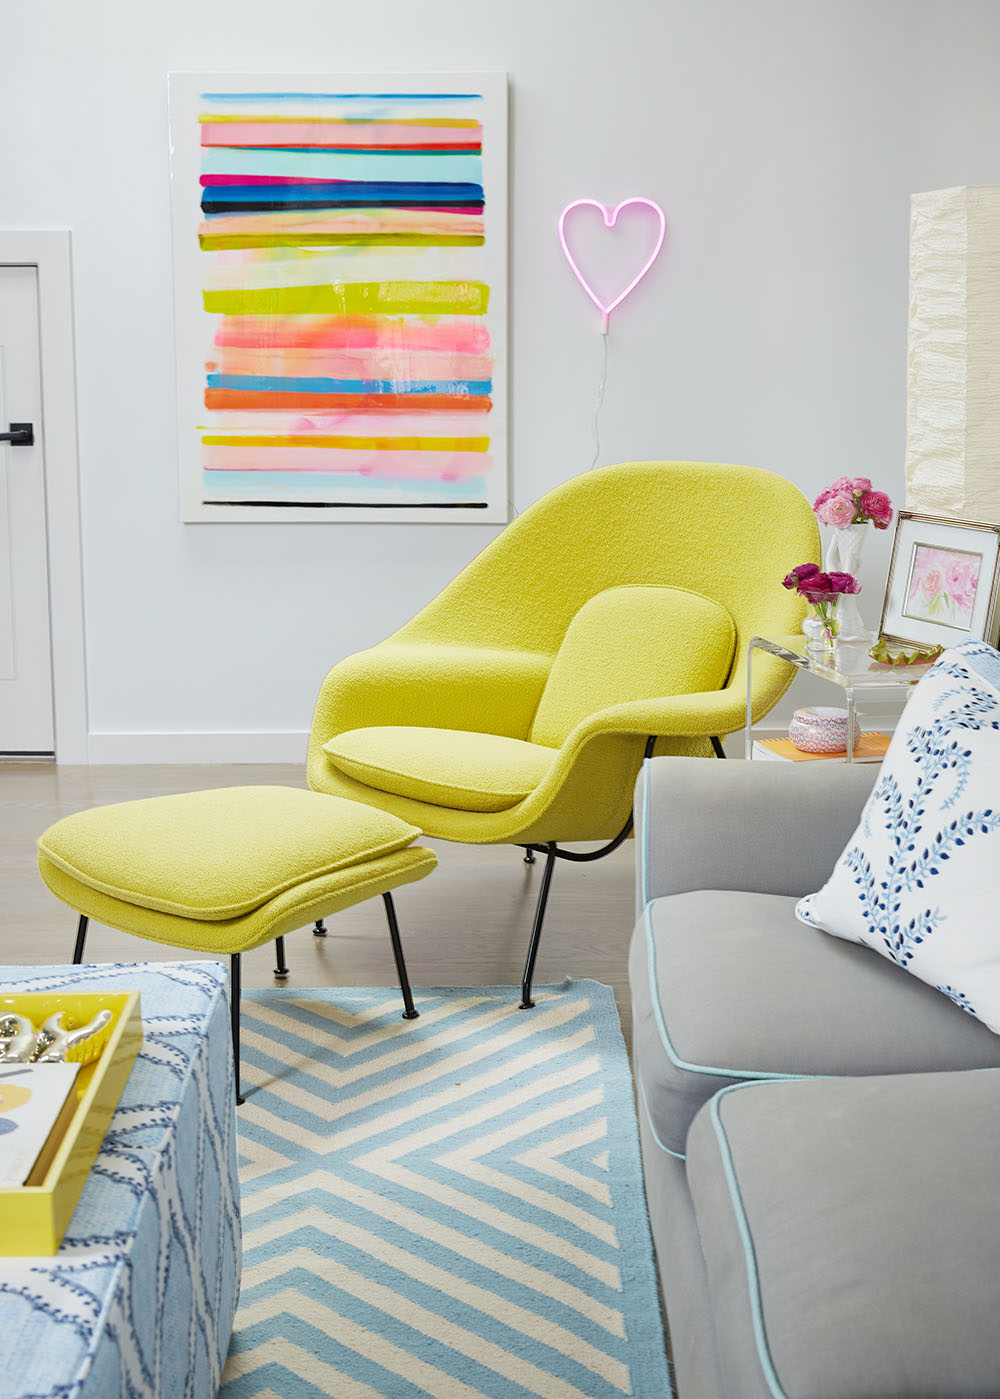 Mimosa-Lane-Blog-One-Room-Challenge.jpg, GeeGee-collins, Womb-Chair, Design-within-reach